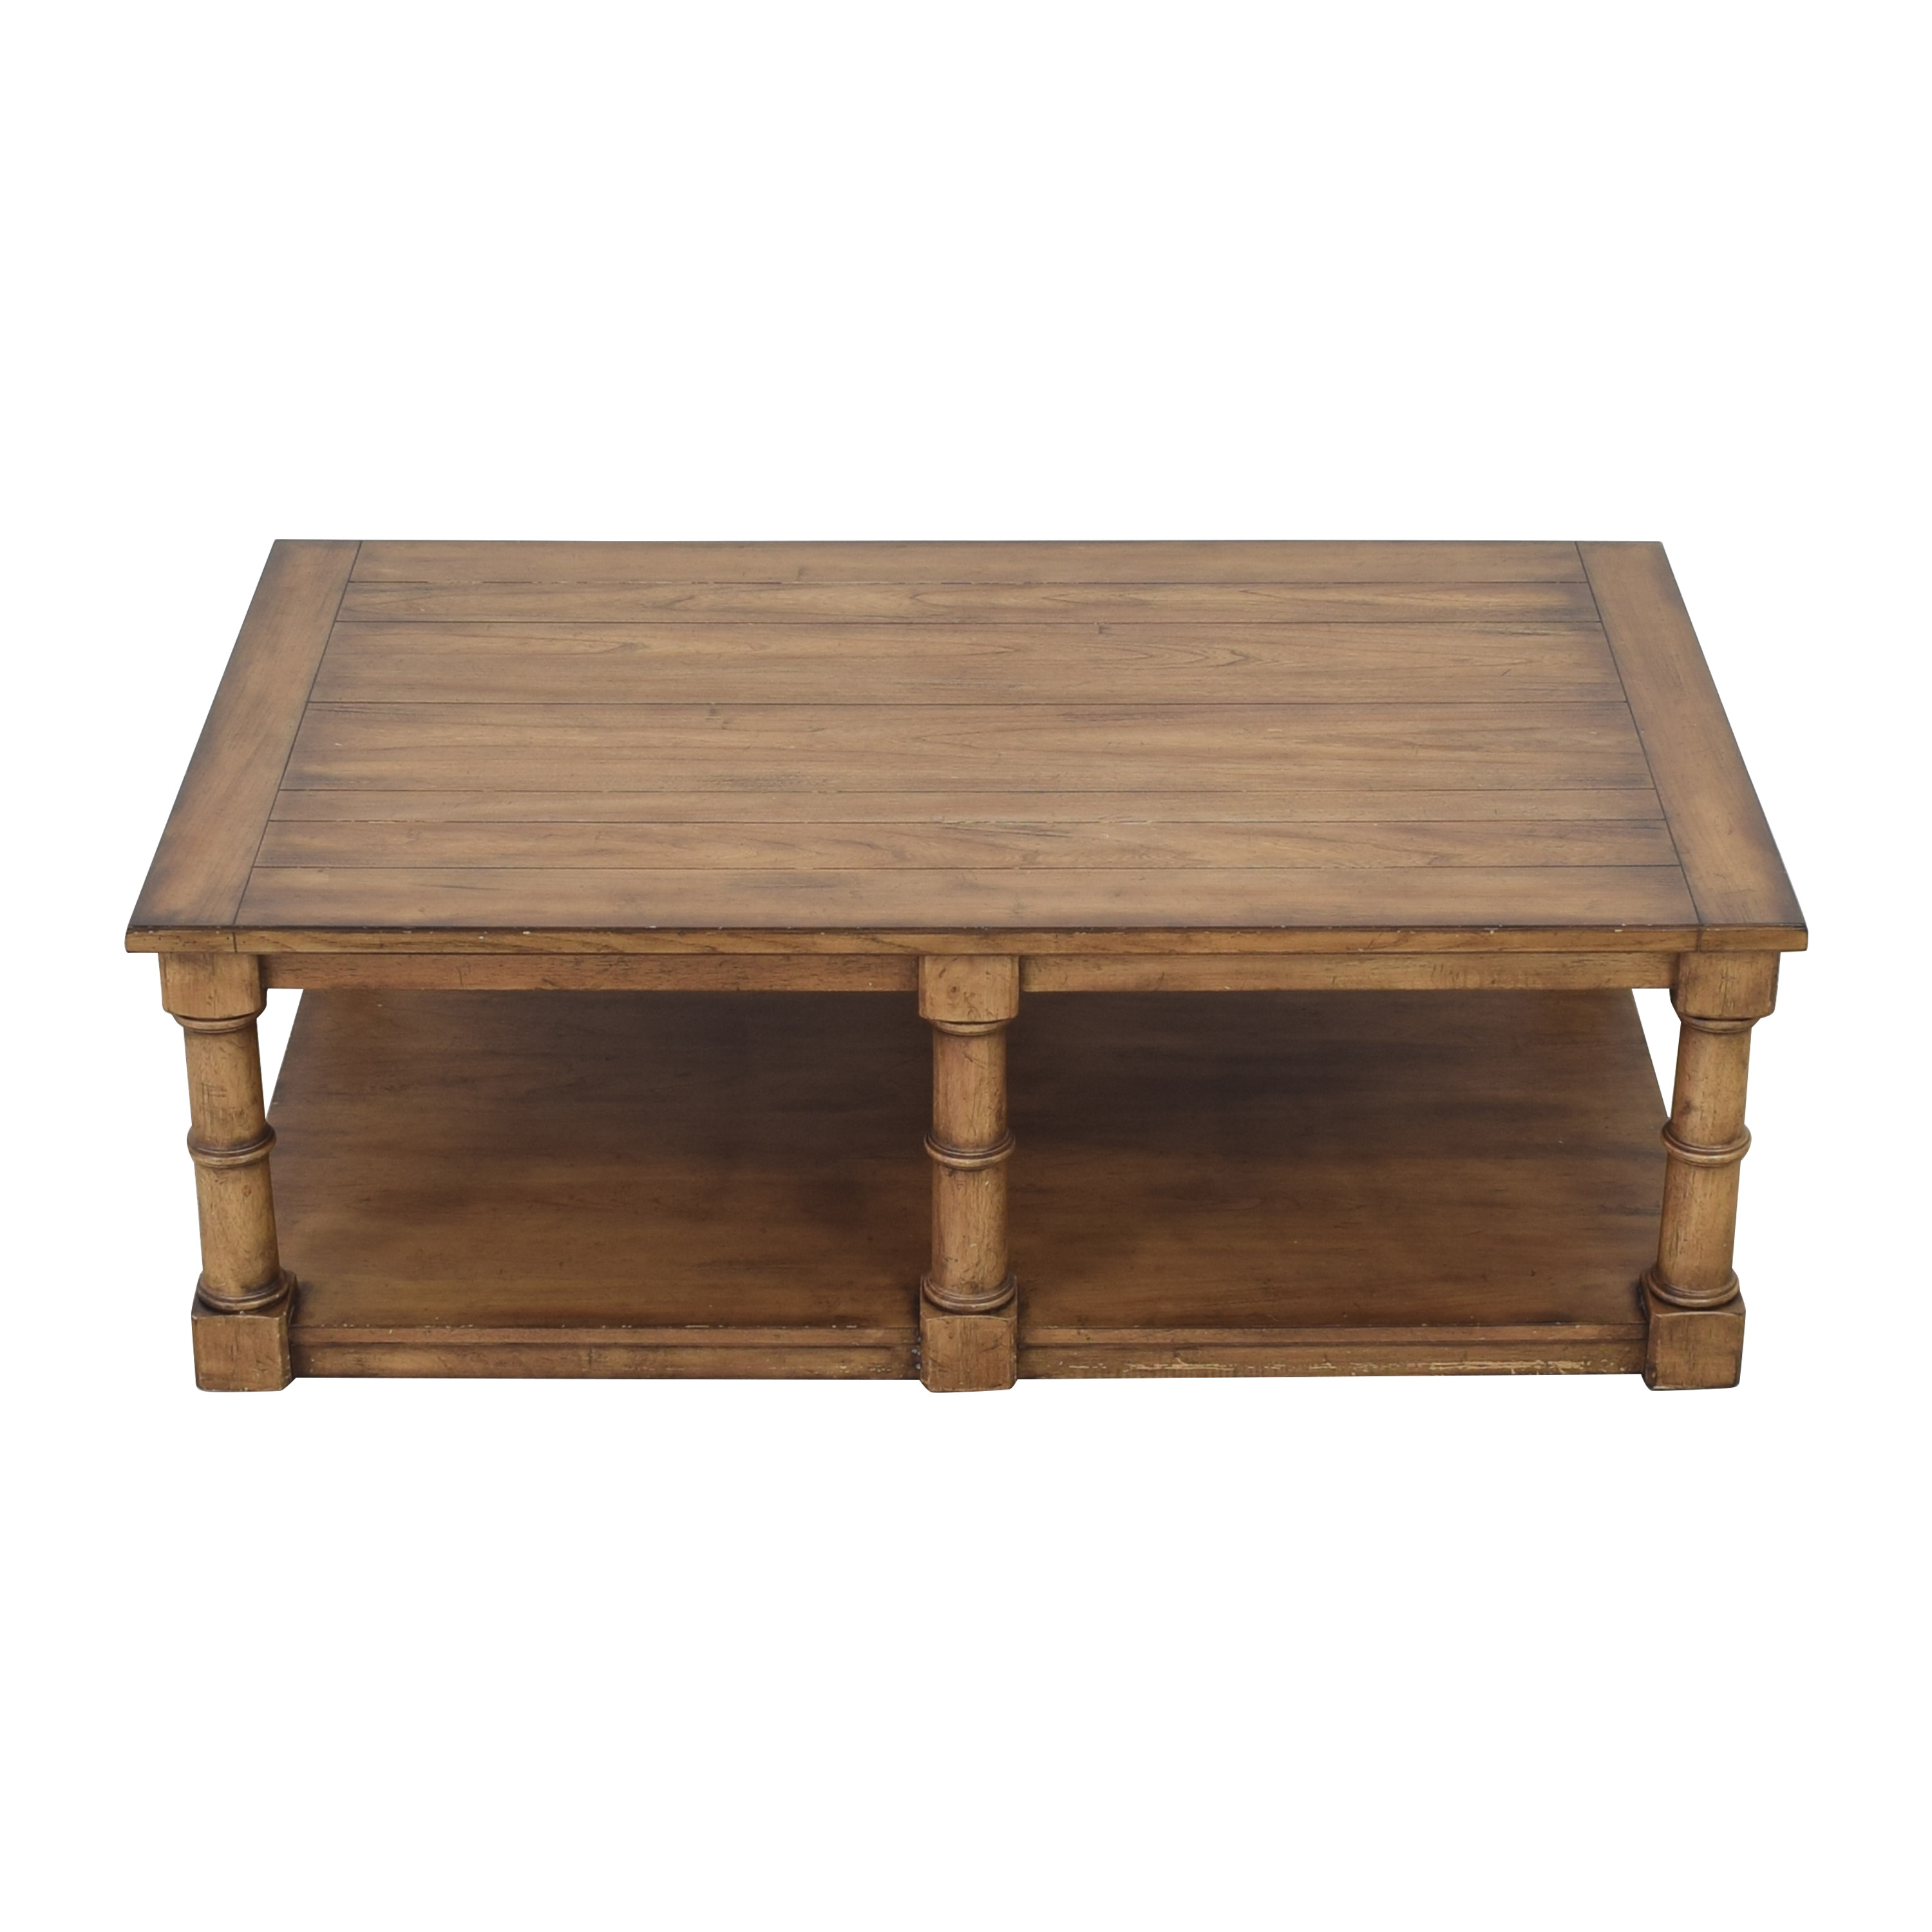 Ethan Allen Ethan Allen Storage Coffee Table used